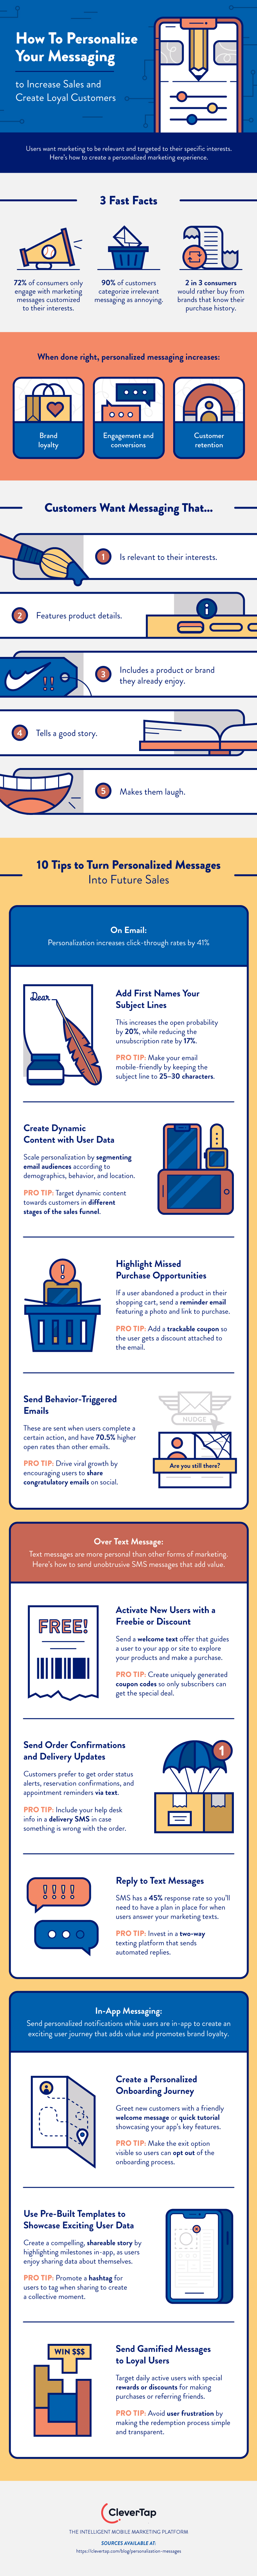 Personalization tips infographic